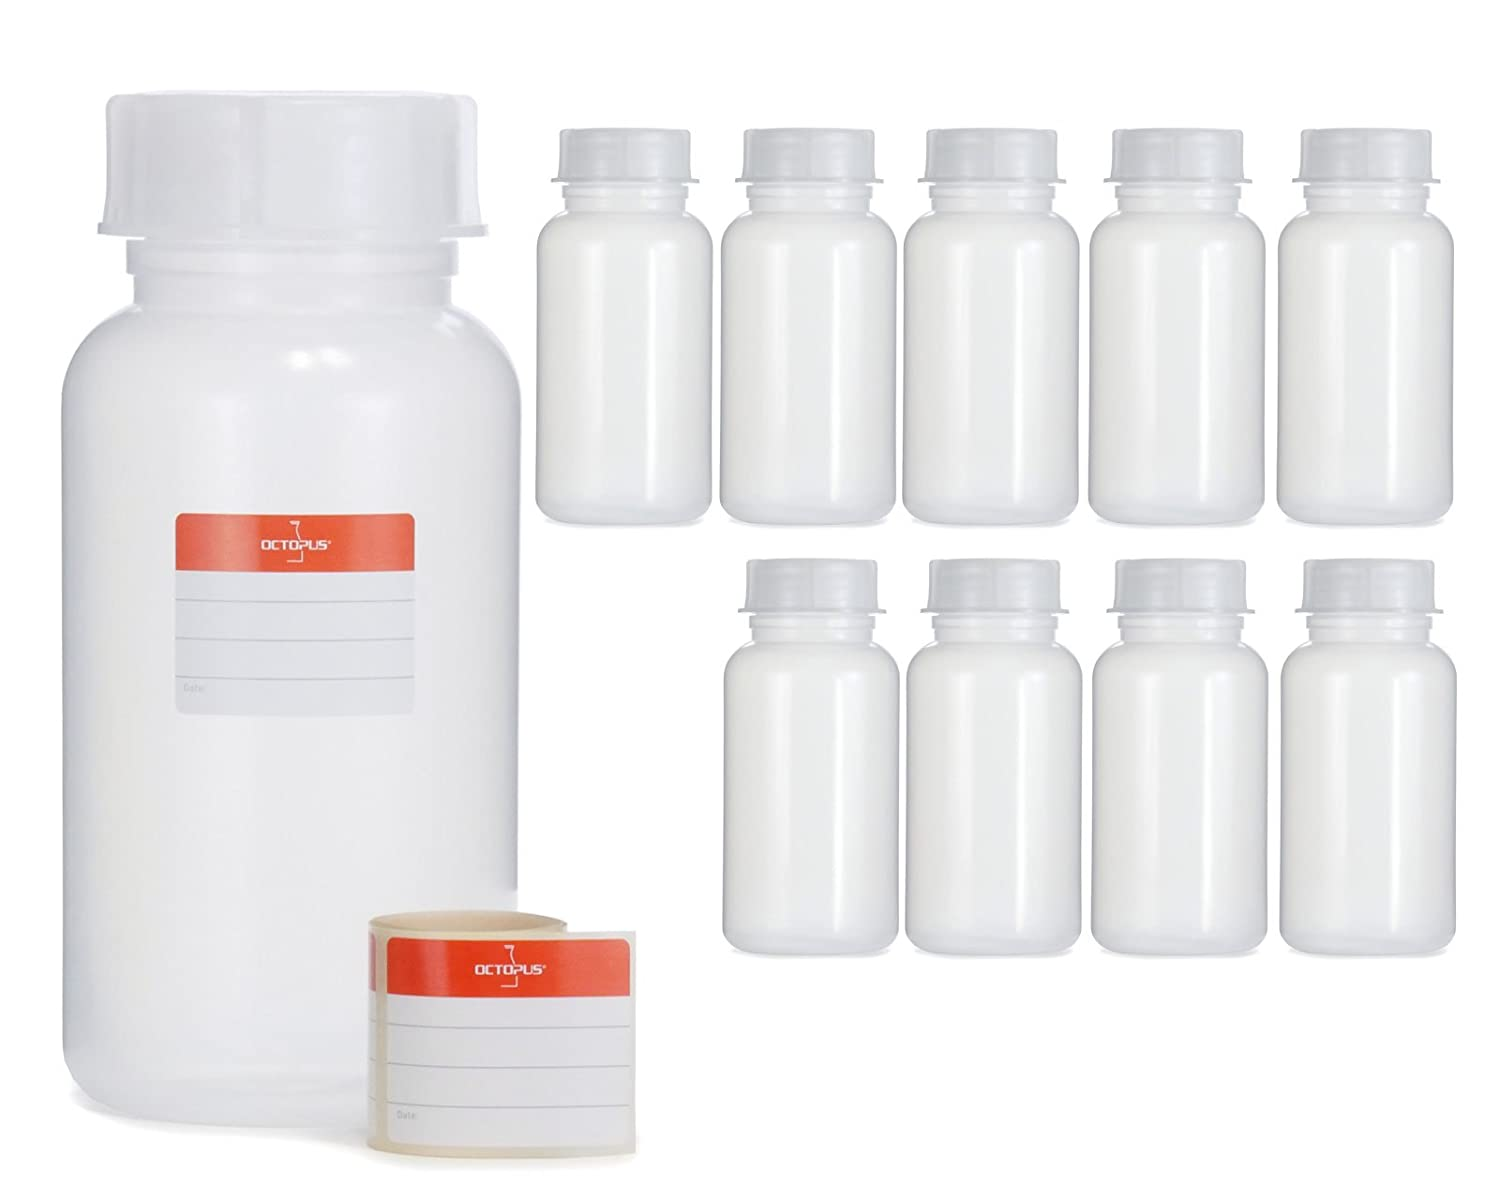 laboratory bottle chemical bottle Octopus 1x 1500 ml wide mouth bottles with screw top